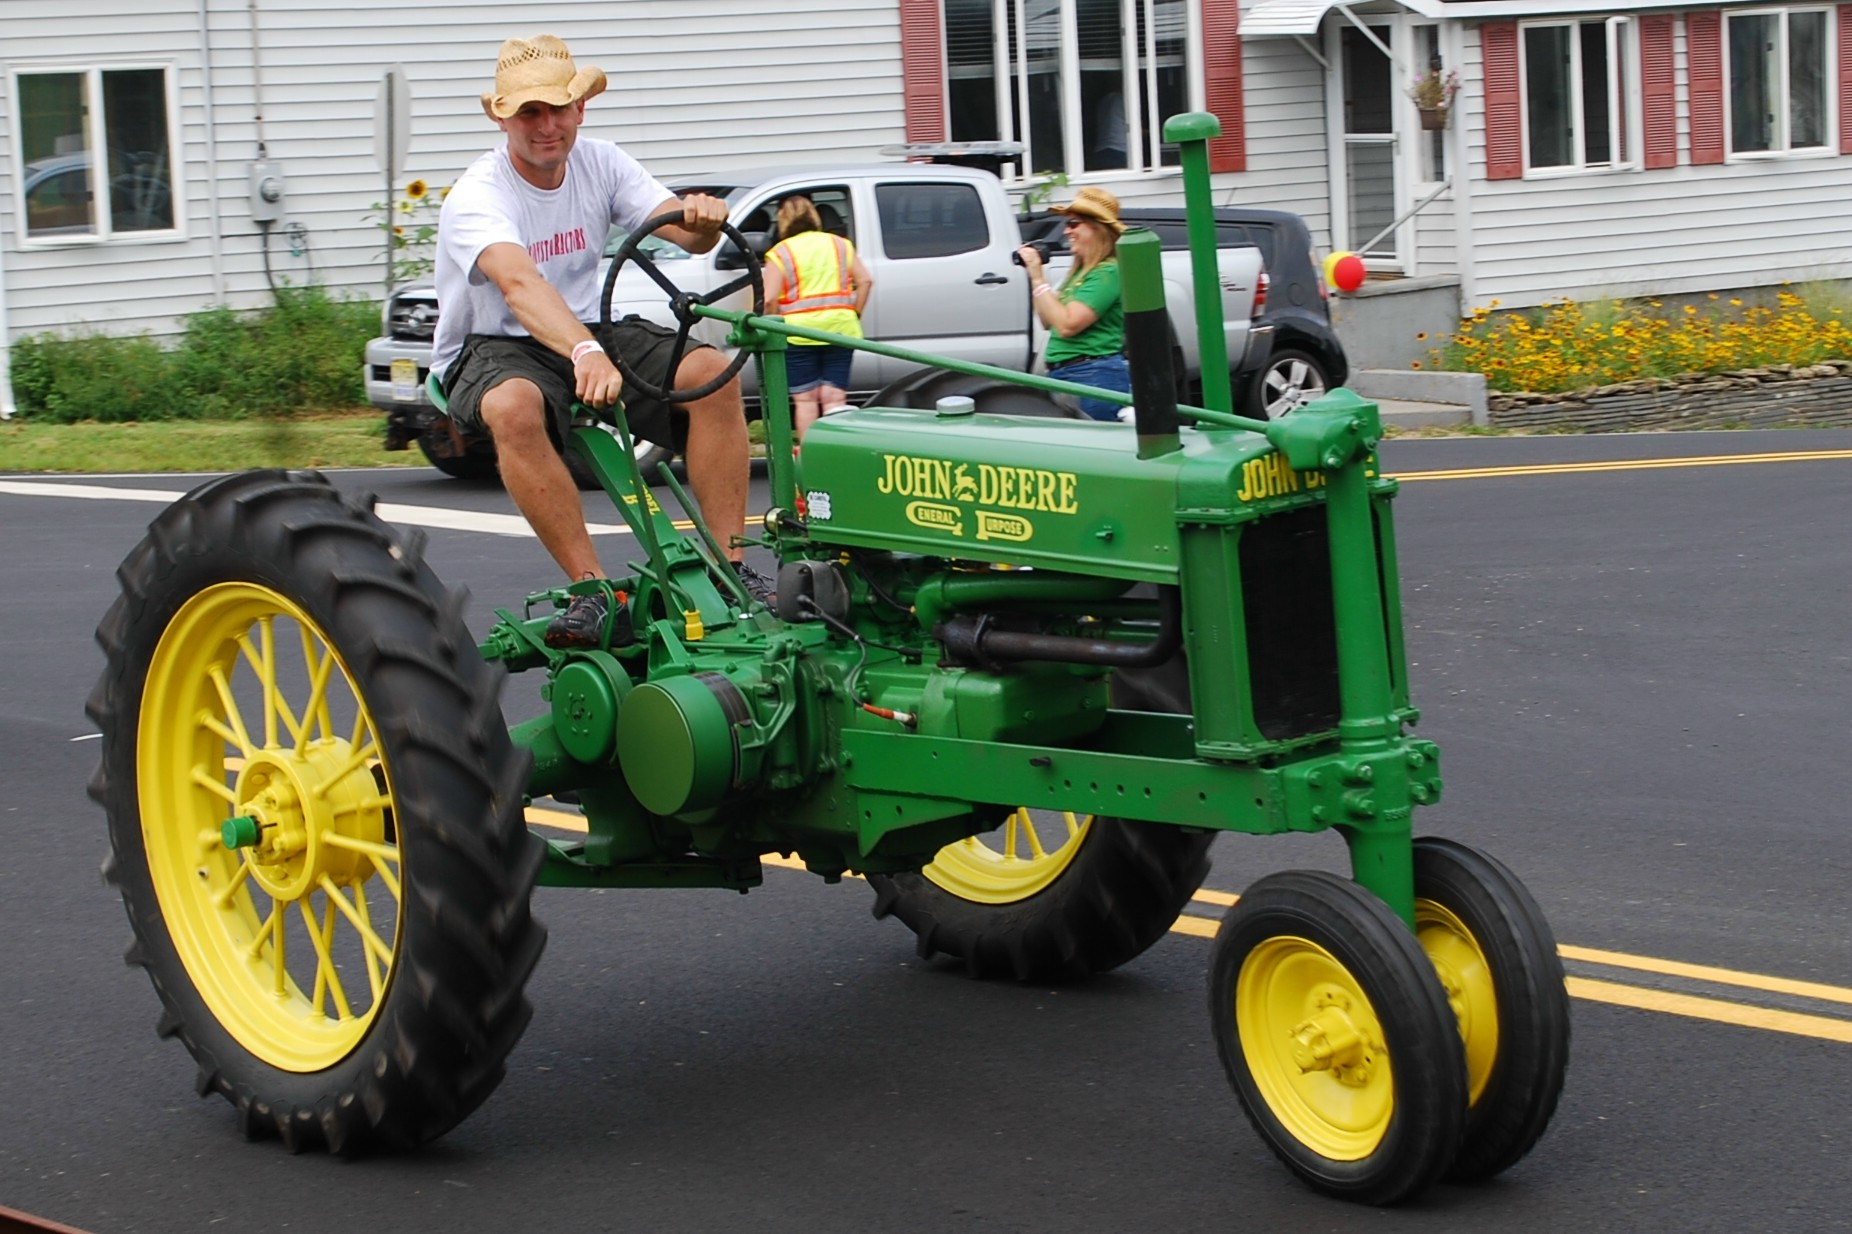 Tractor Parade Seat : Sandyston puts tractors on parade sussex nj news tapinto